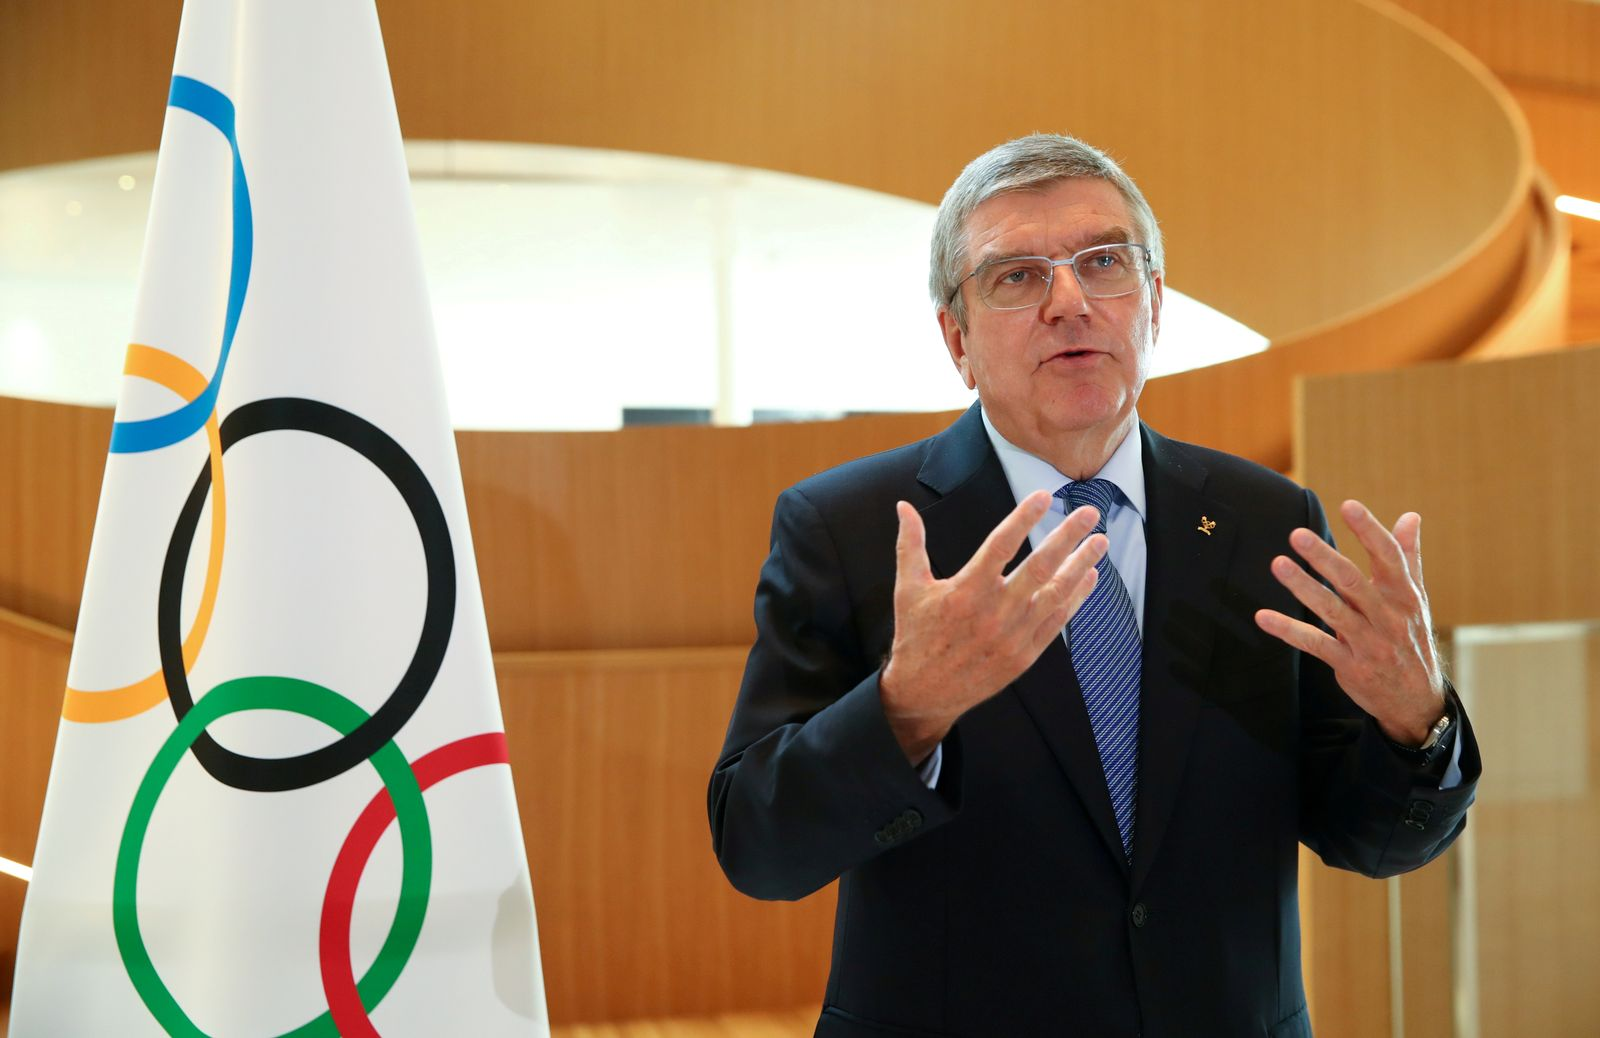 FILE PHOTO: Thomas Bach, President of the International Olympic Committee (IOC) attends an interview after the decision to postpone the Tokyo 2020 because of the coronavirus disease